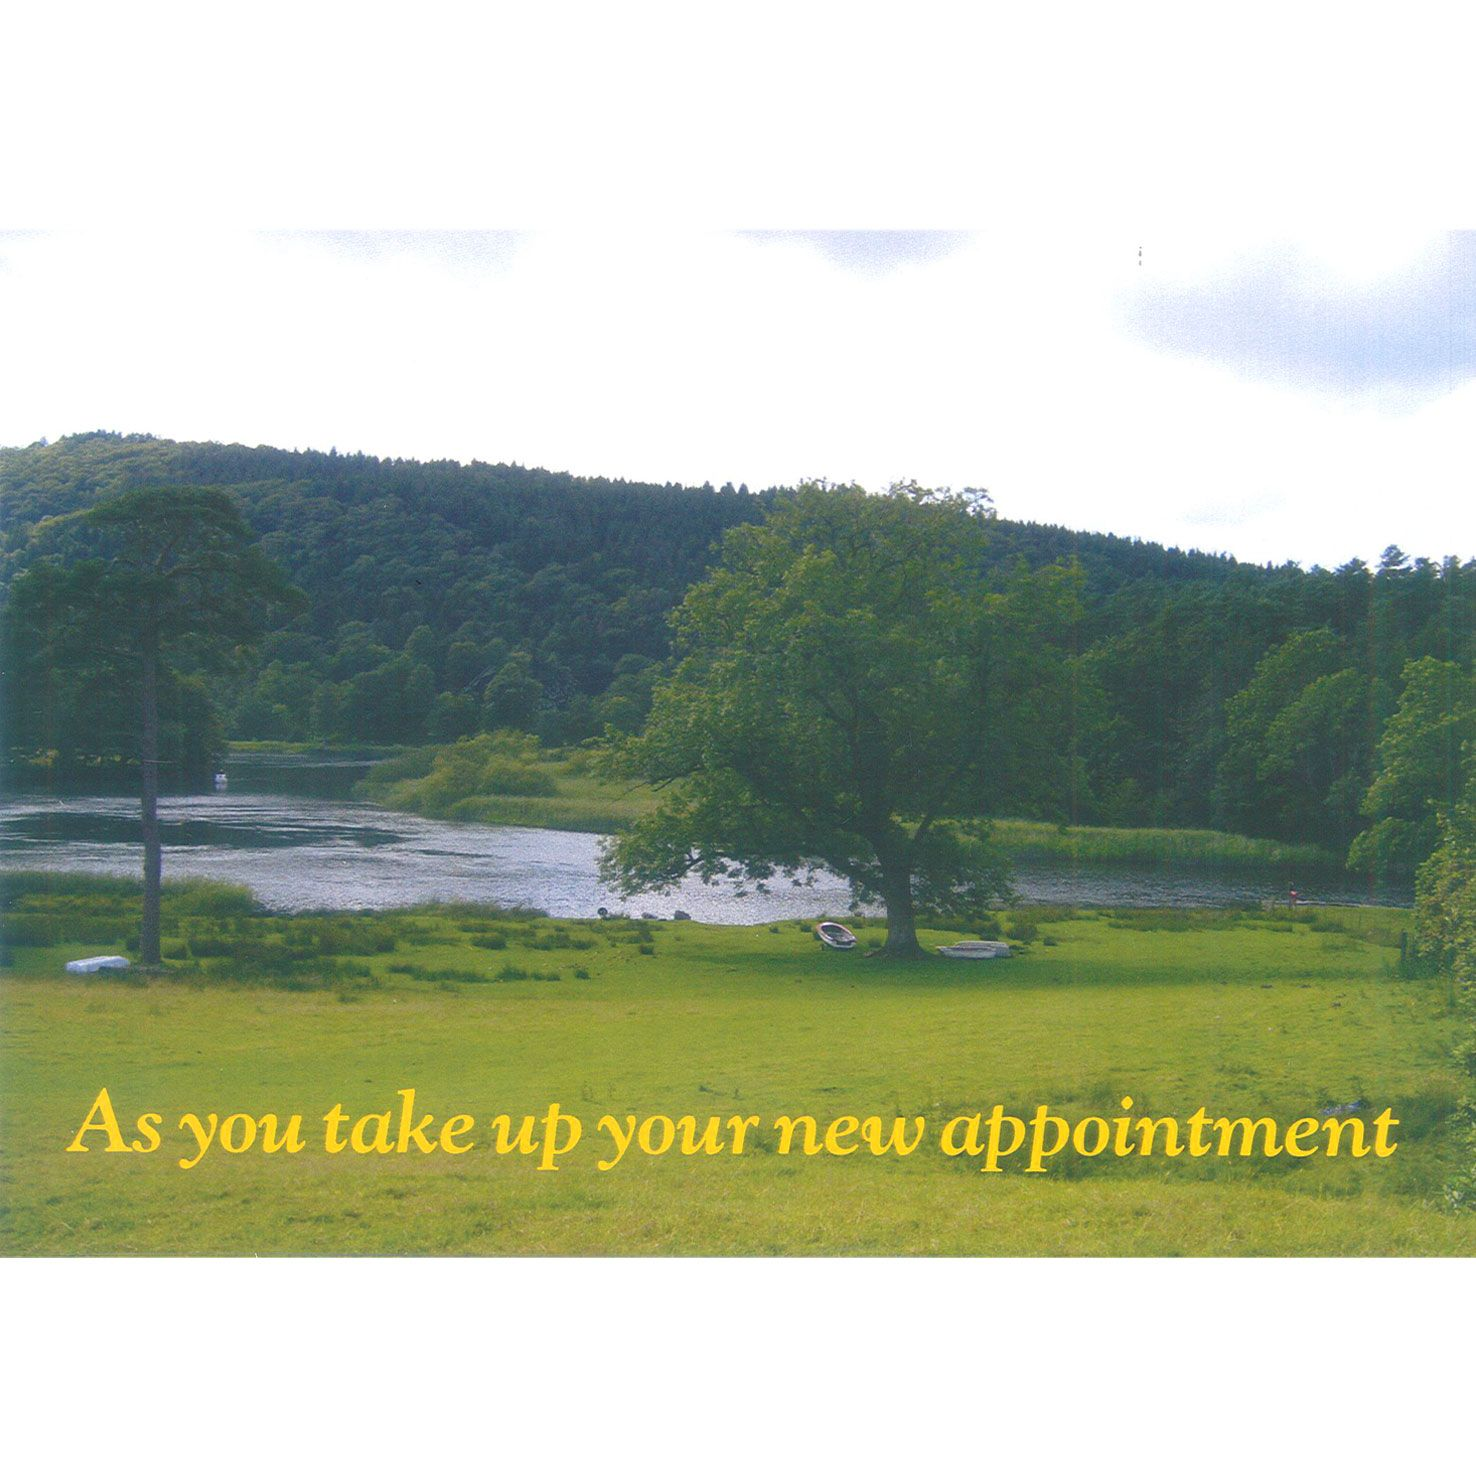 New Appointment Card - Lakeside